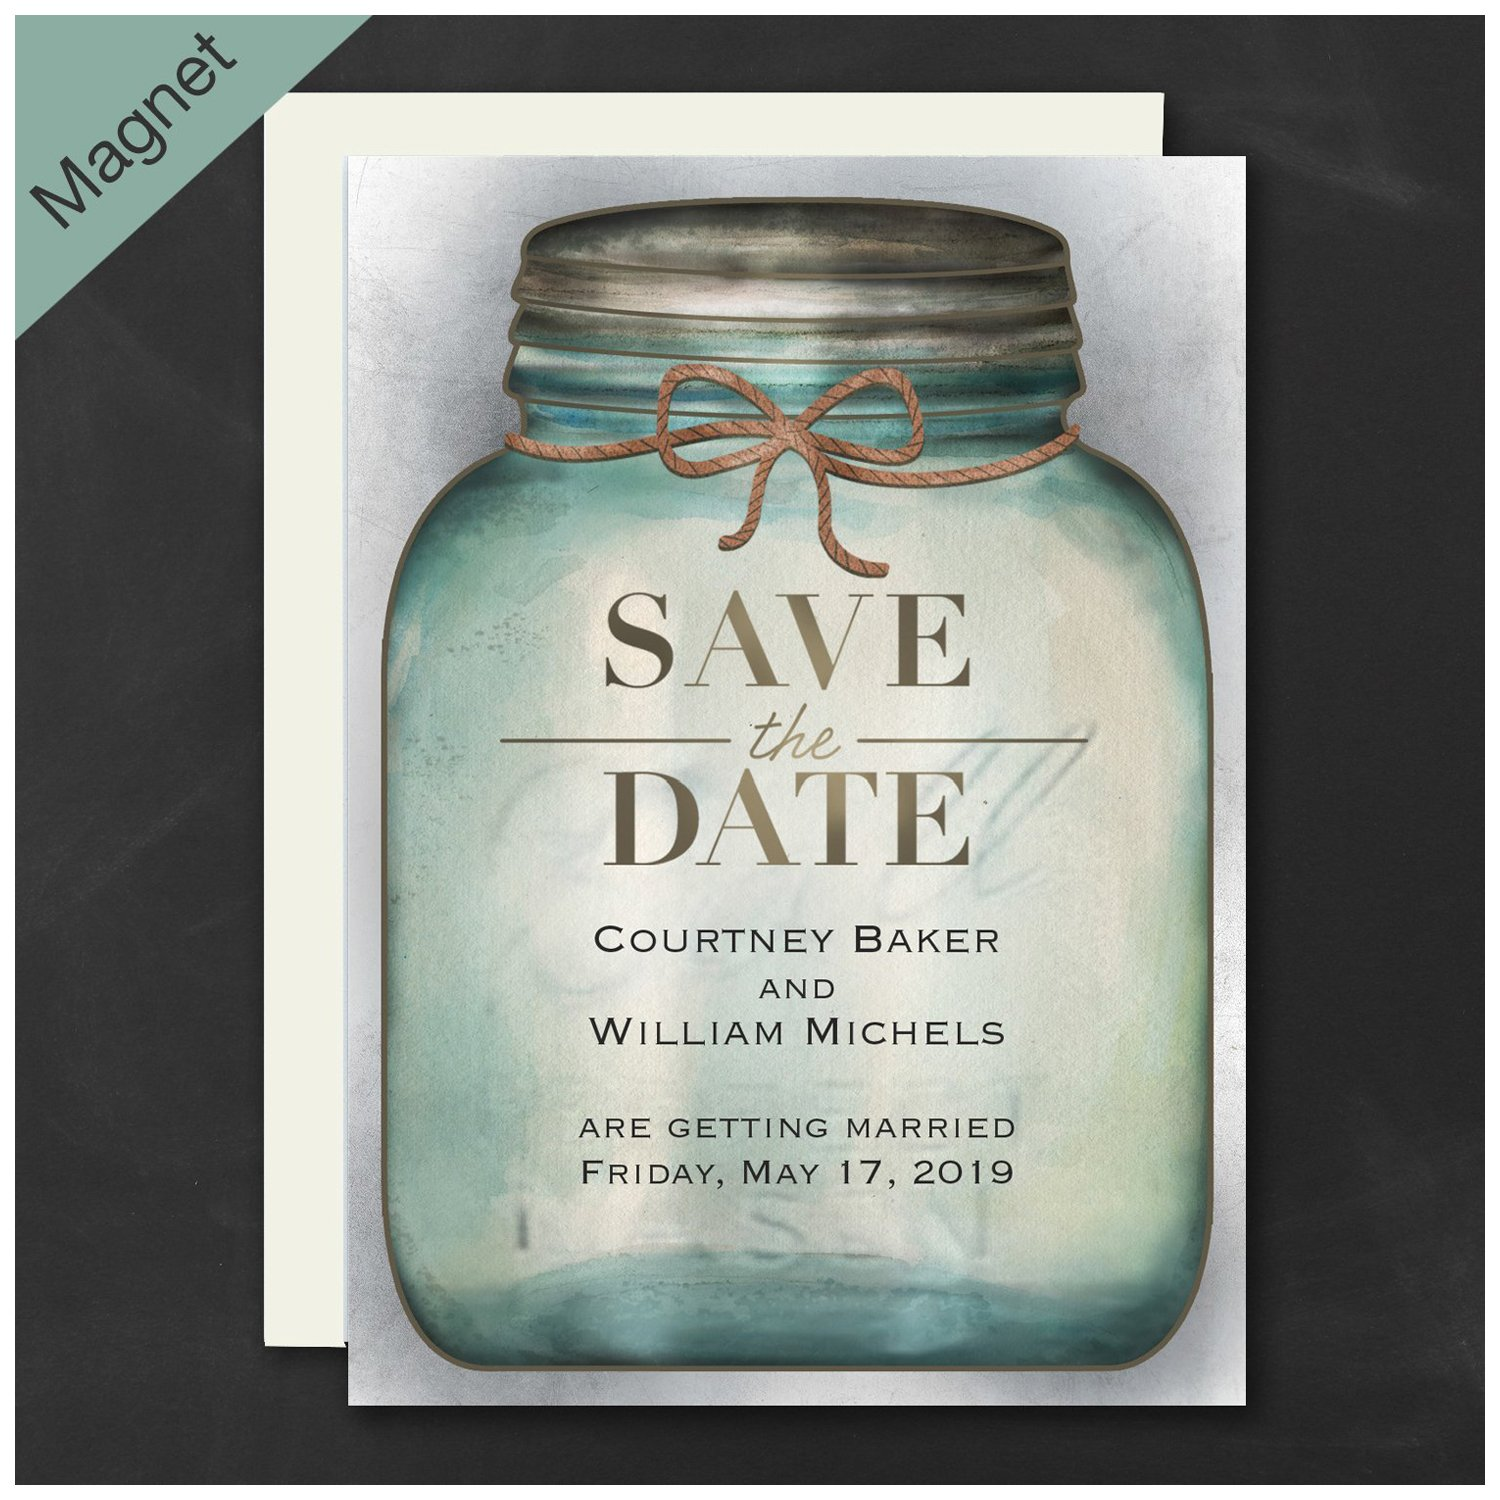 Personalized Carlson Craft Country Mason Jar - Save The Date Magnet Wedding Quantity 150 by All Things Weddings